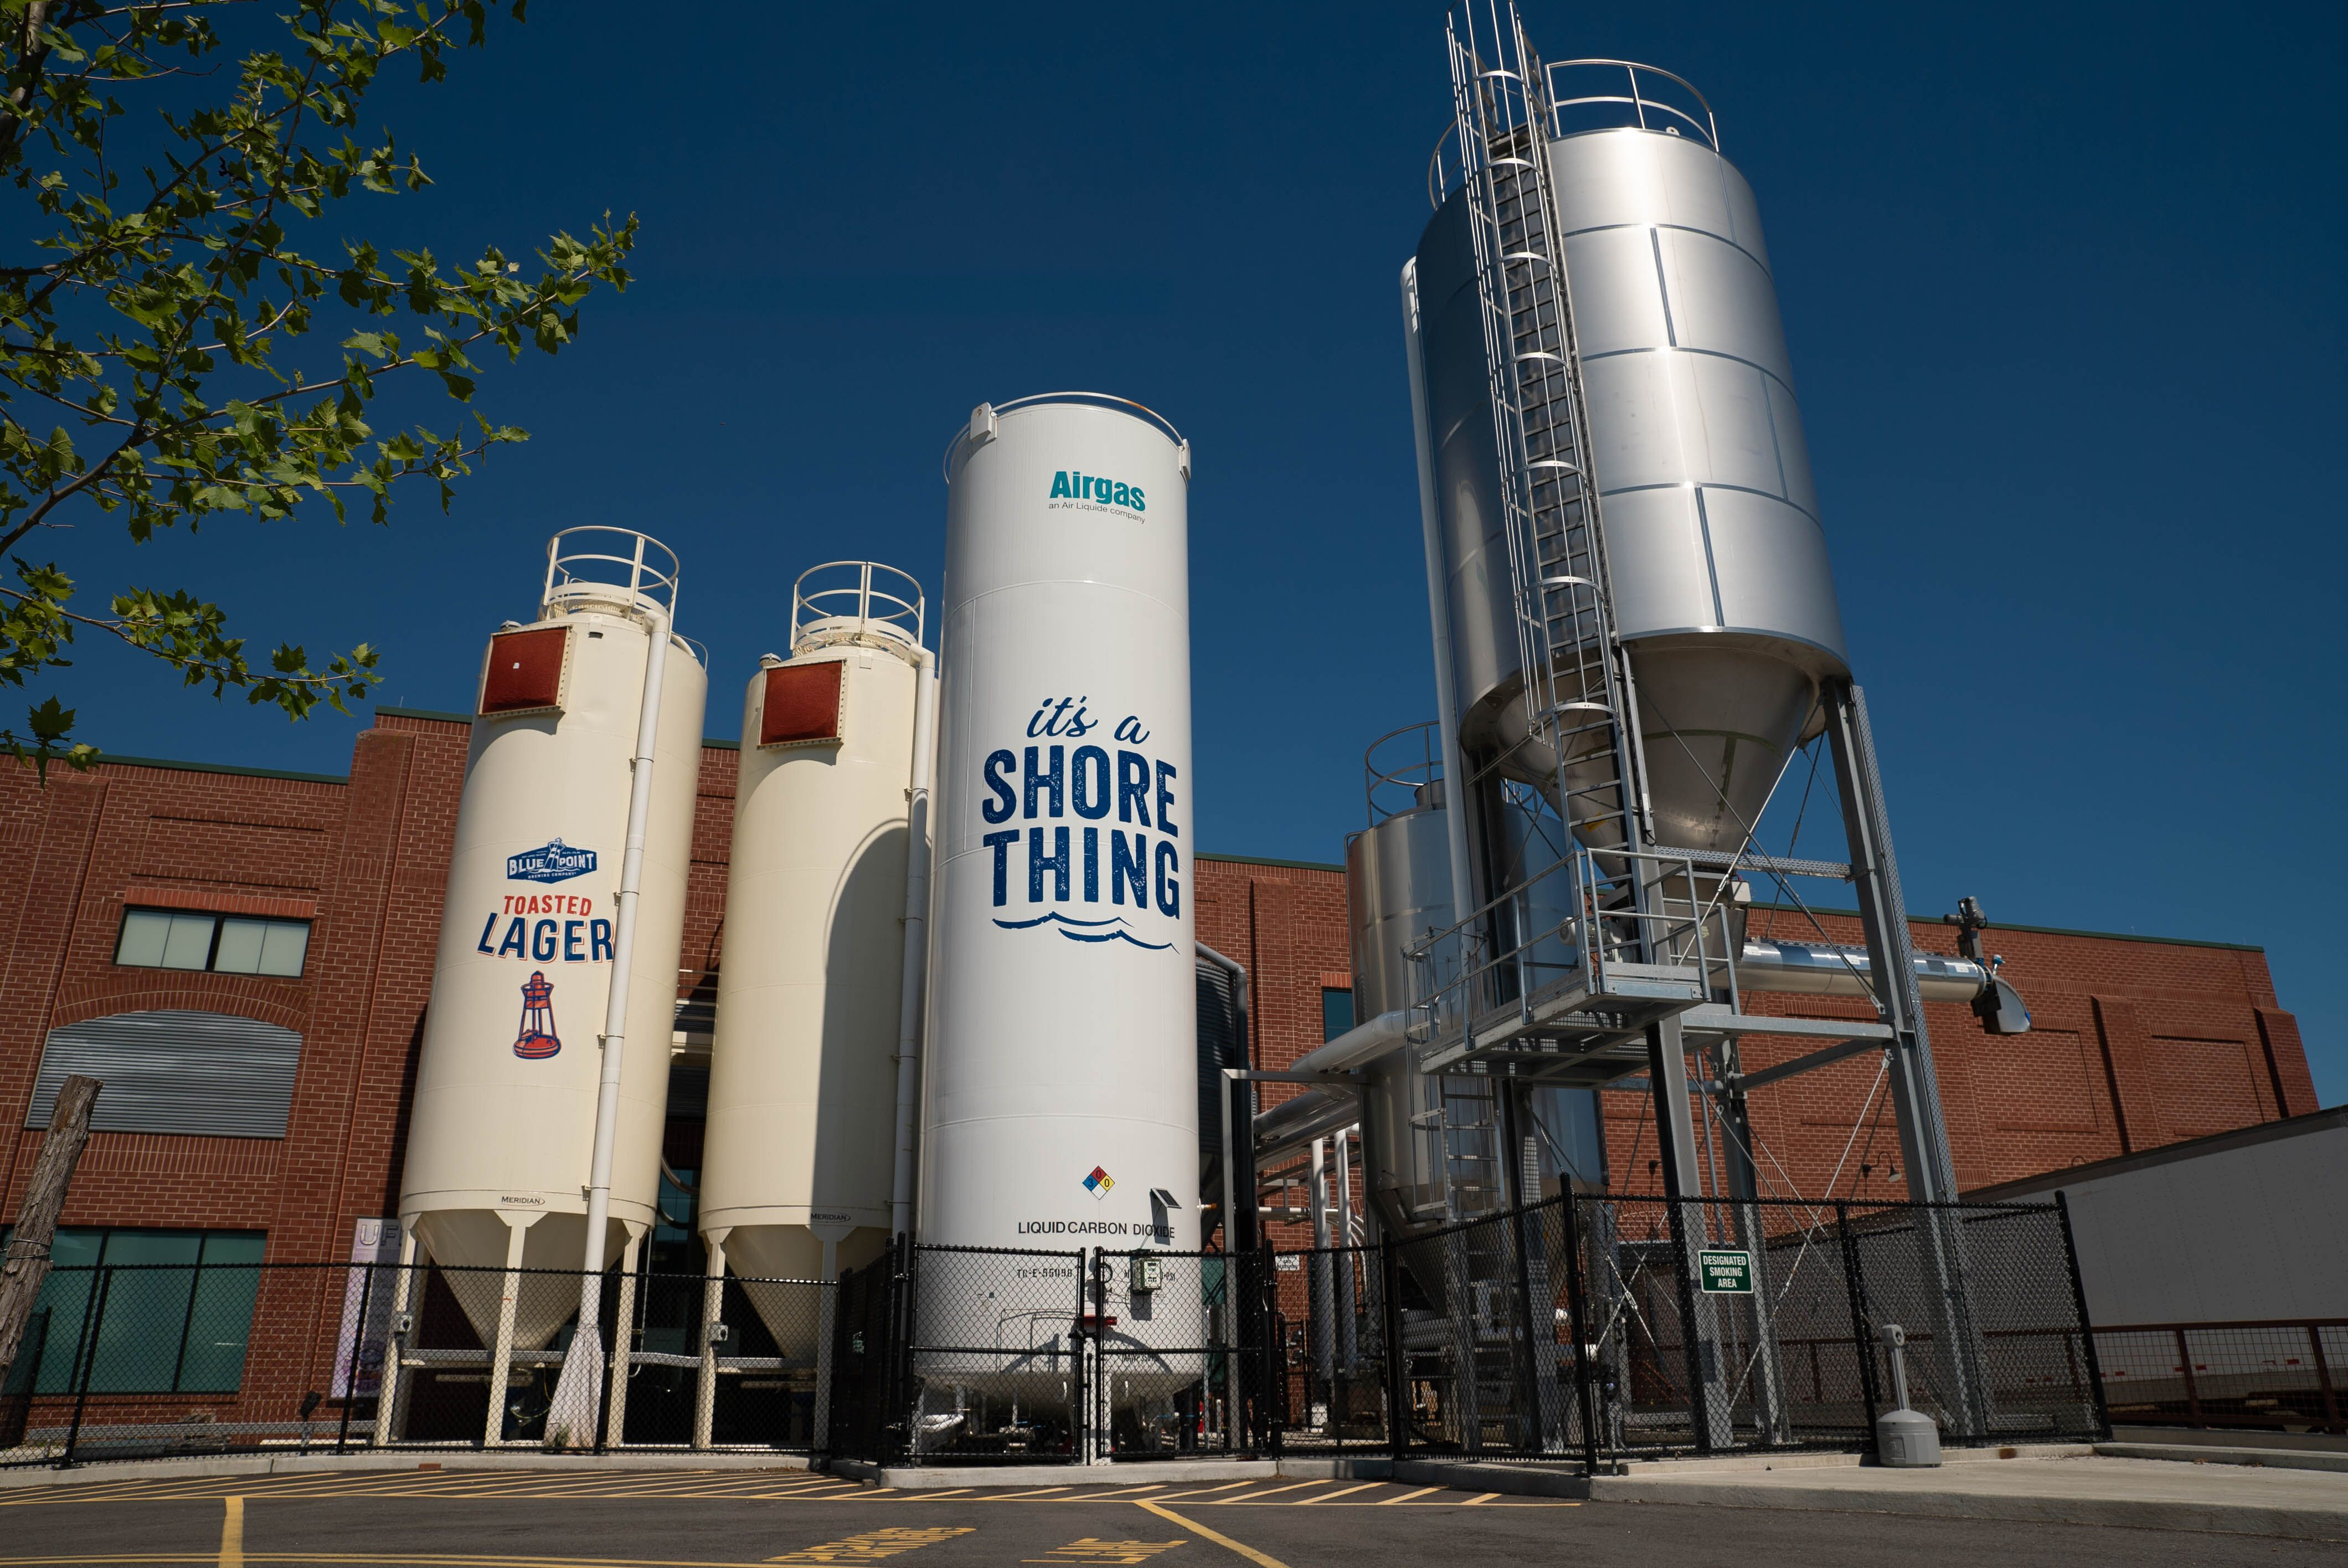 Blue Point Brewery is a destination stop on Long Island